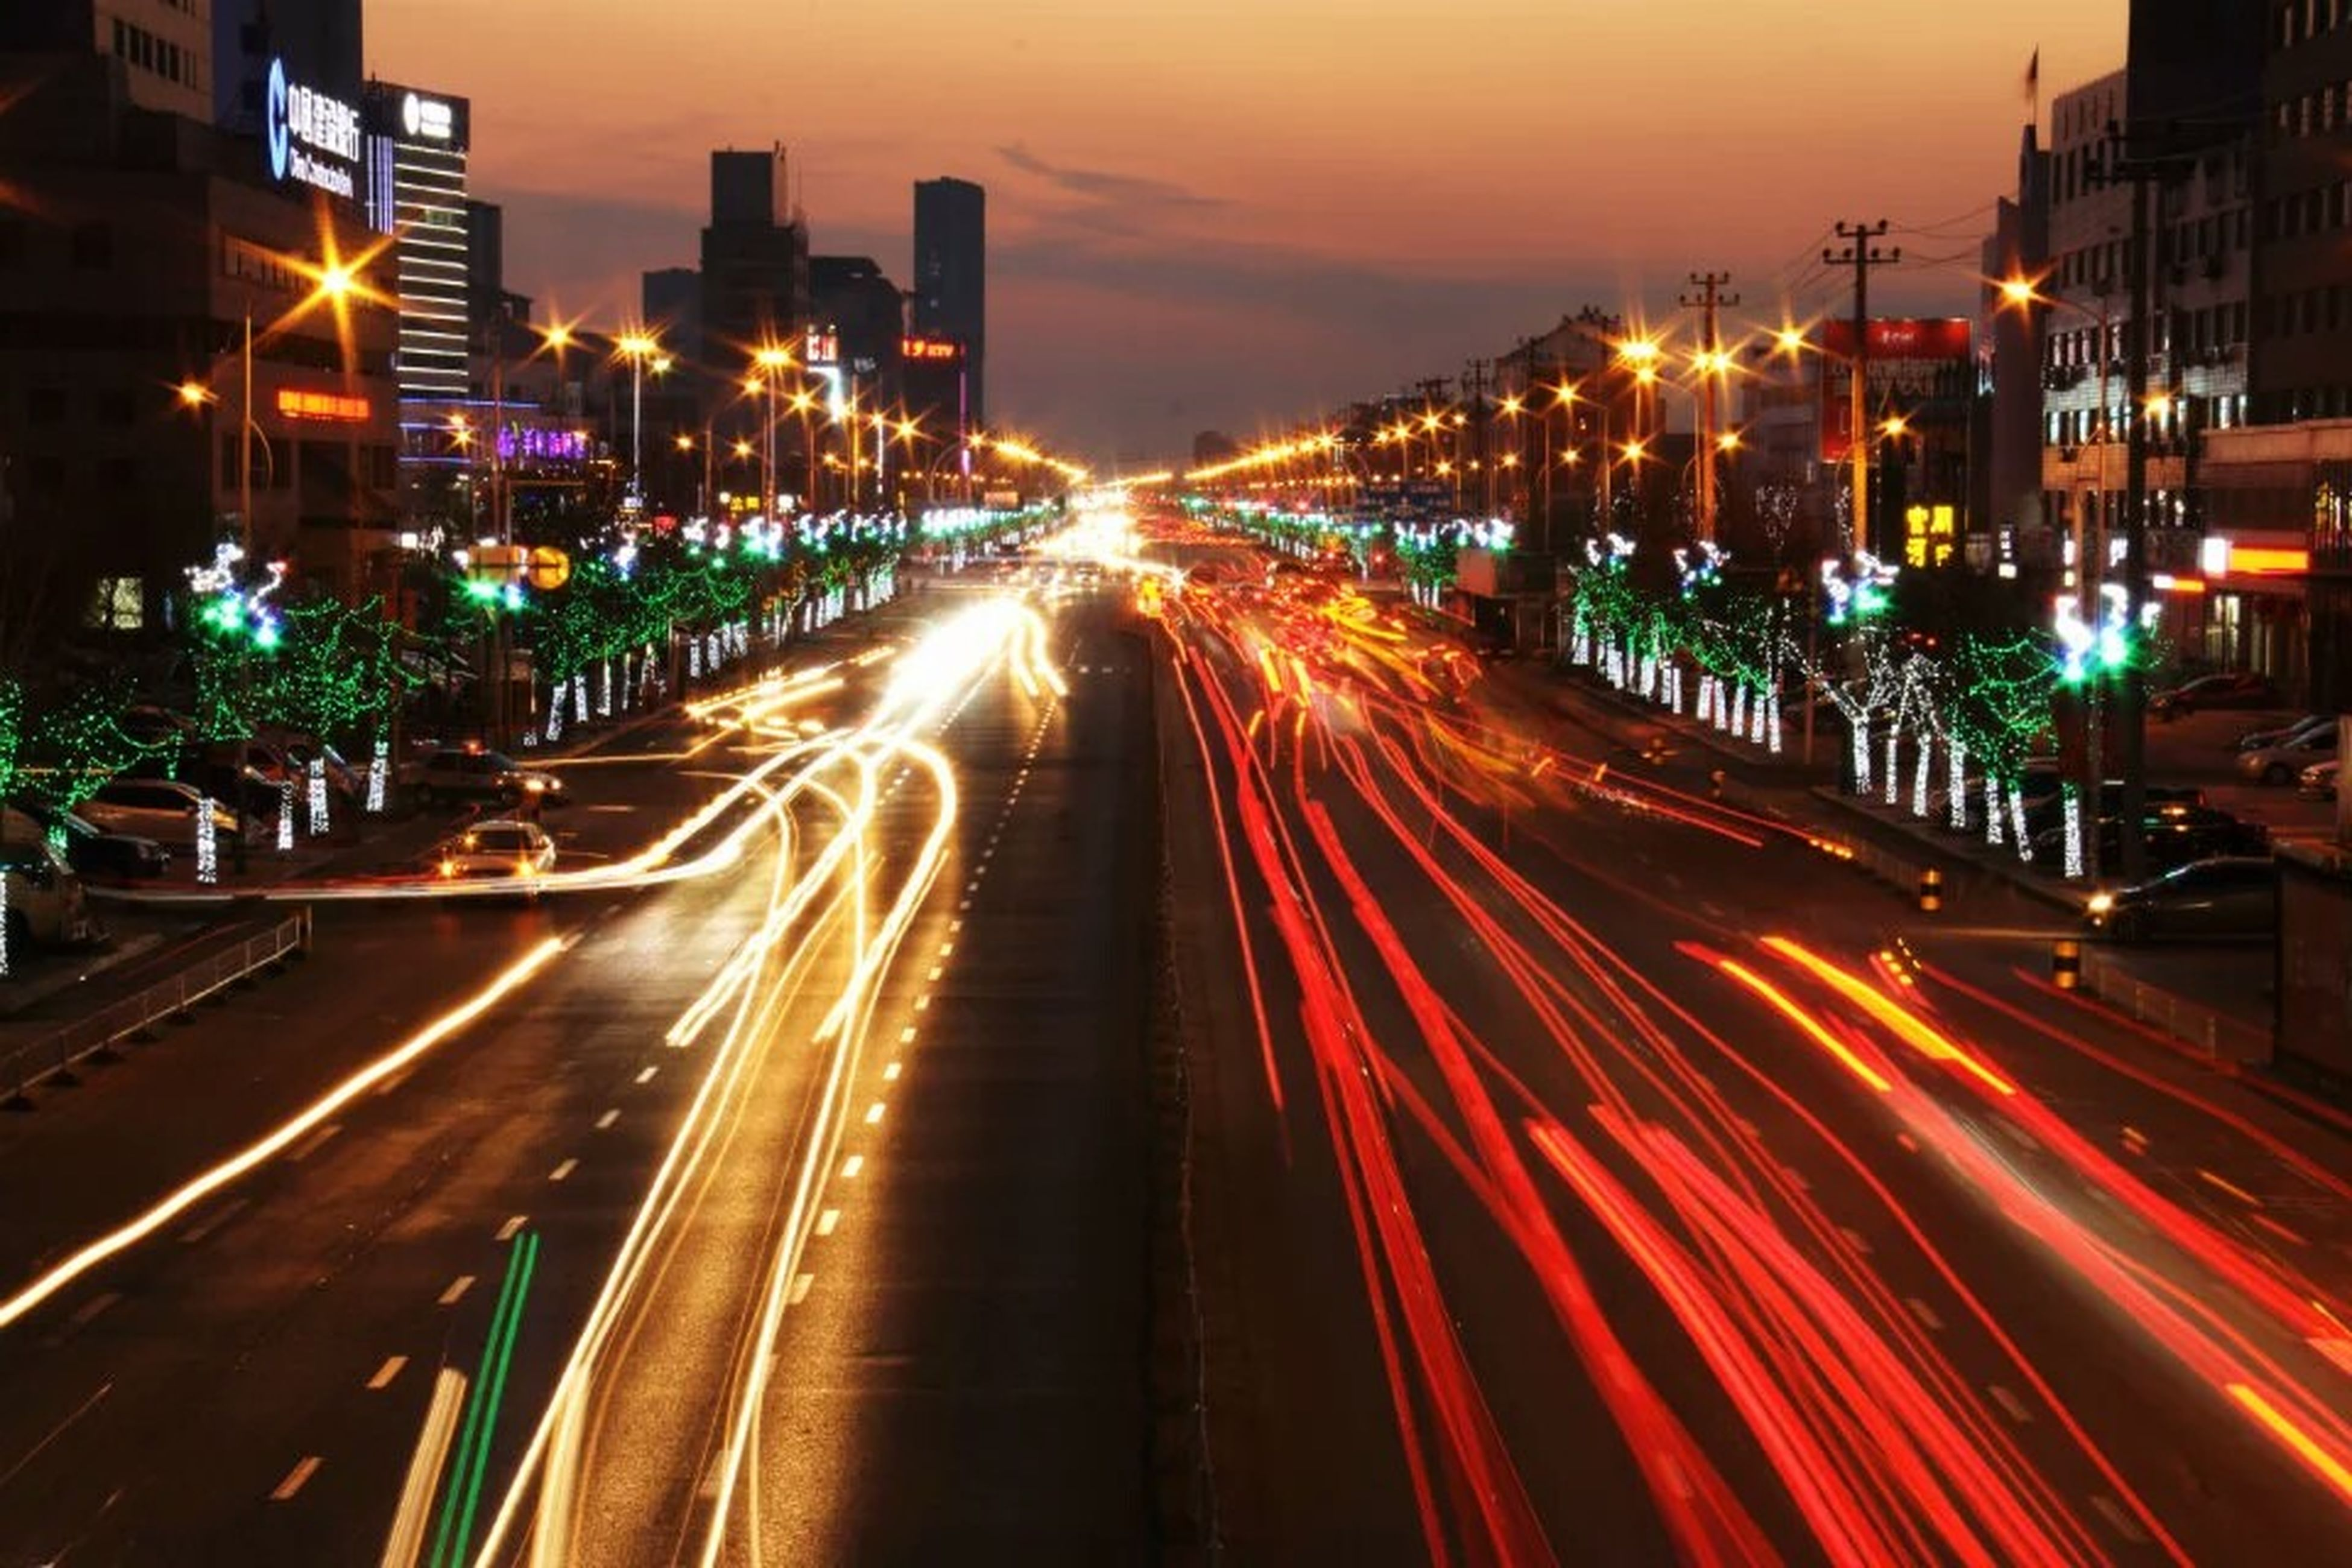 city, night, long exposure, traffic, illuminated, light trail, speed, city life, transportation, street, motion, city street, street light, dusk, cityscape, high angle view, car, road, architecture, highway, blurred motion, outdoors, skyscraper, travel destinations, building exterior, rush hour, nightlife, modern, no people, sky